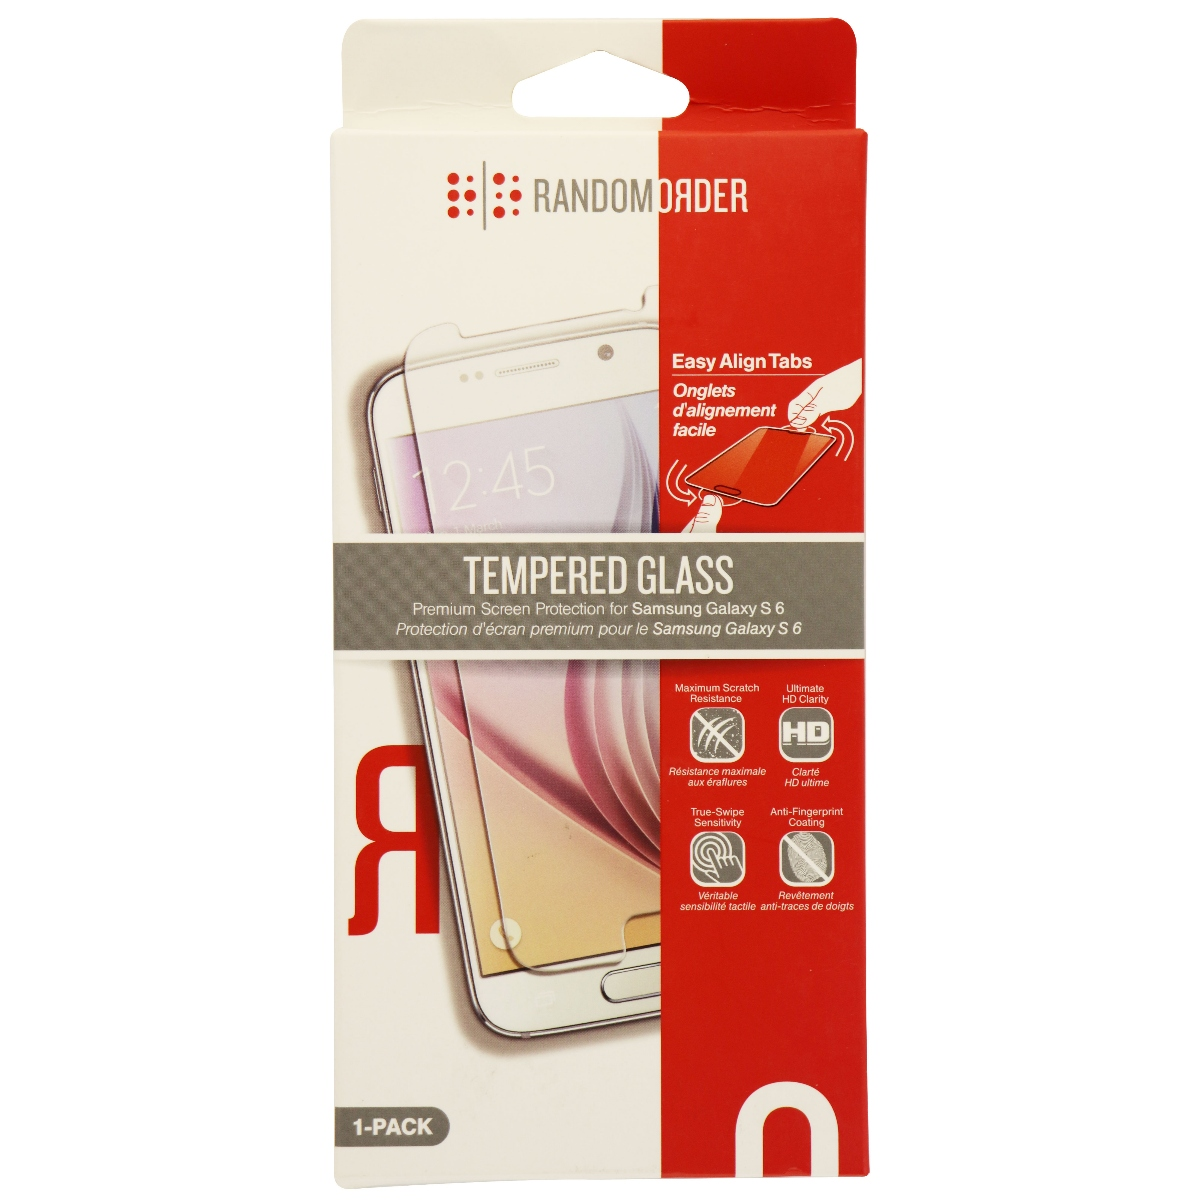 Random Order Tempered Glass Screen Protector for Samsung Galaxy S6 - Clear